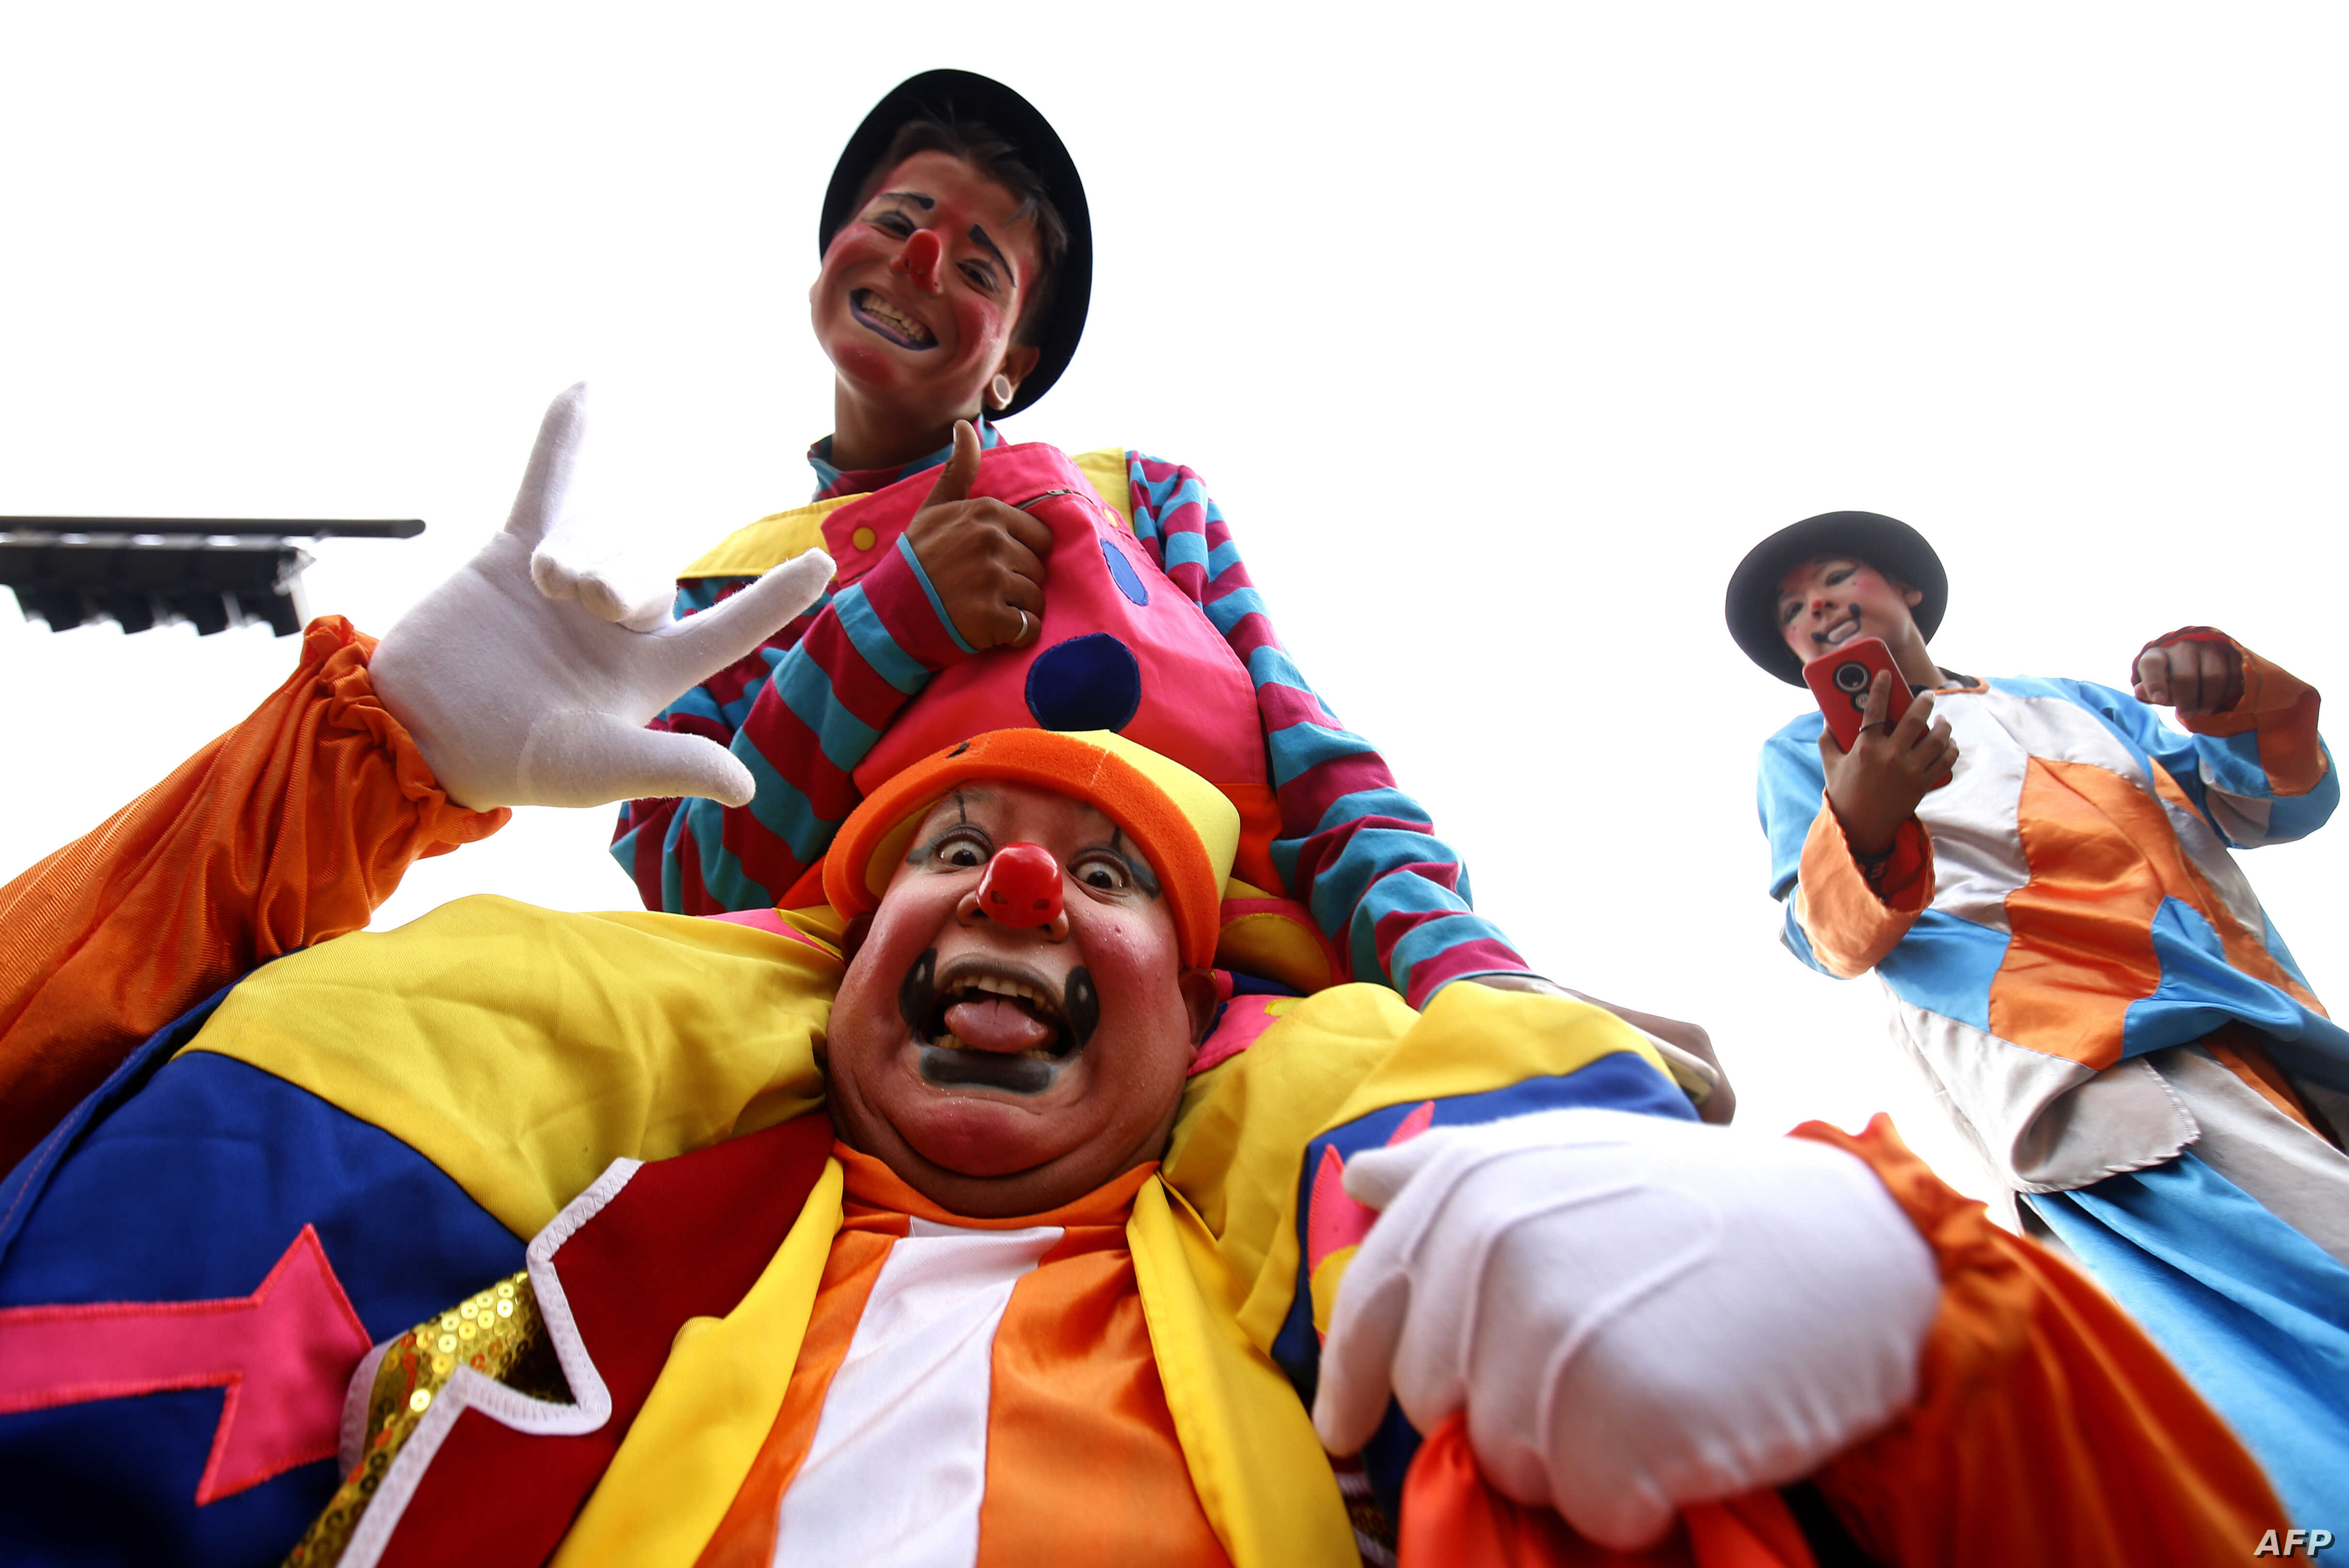 Clowns pose for a picture during the International Clown Day in Guadalajara, Mexico, Dec. 10, 2019.